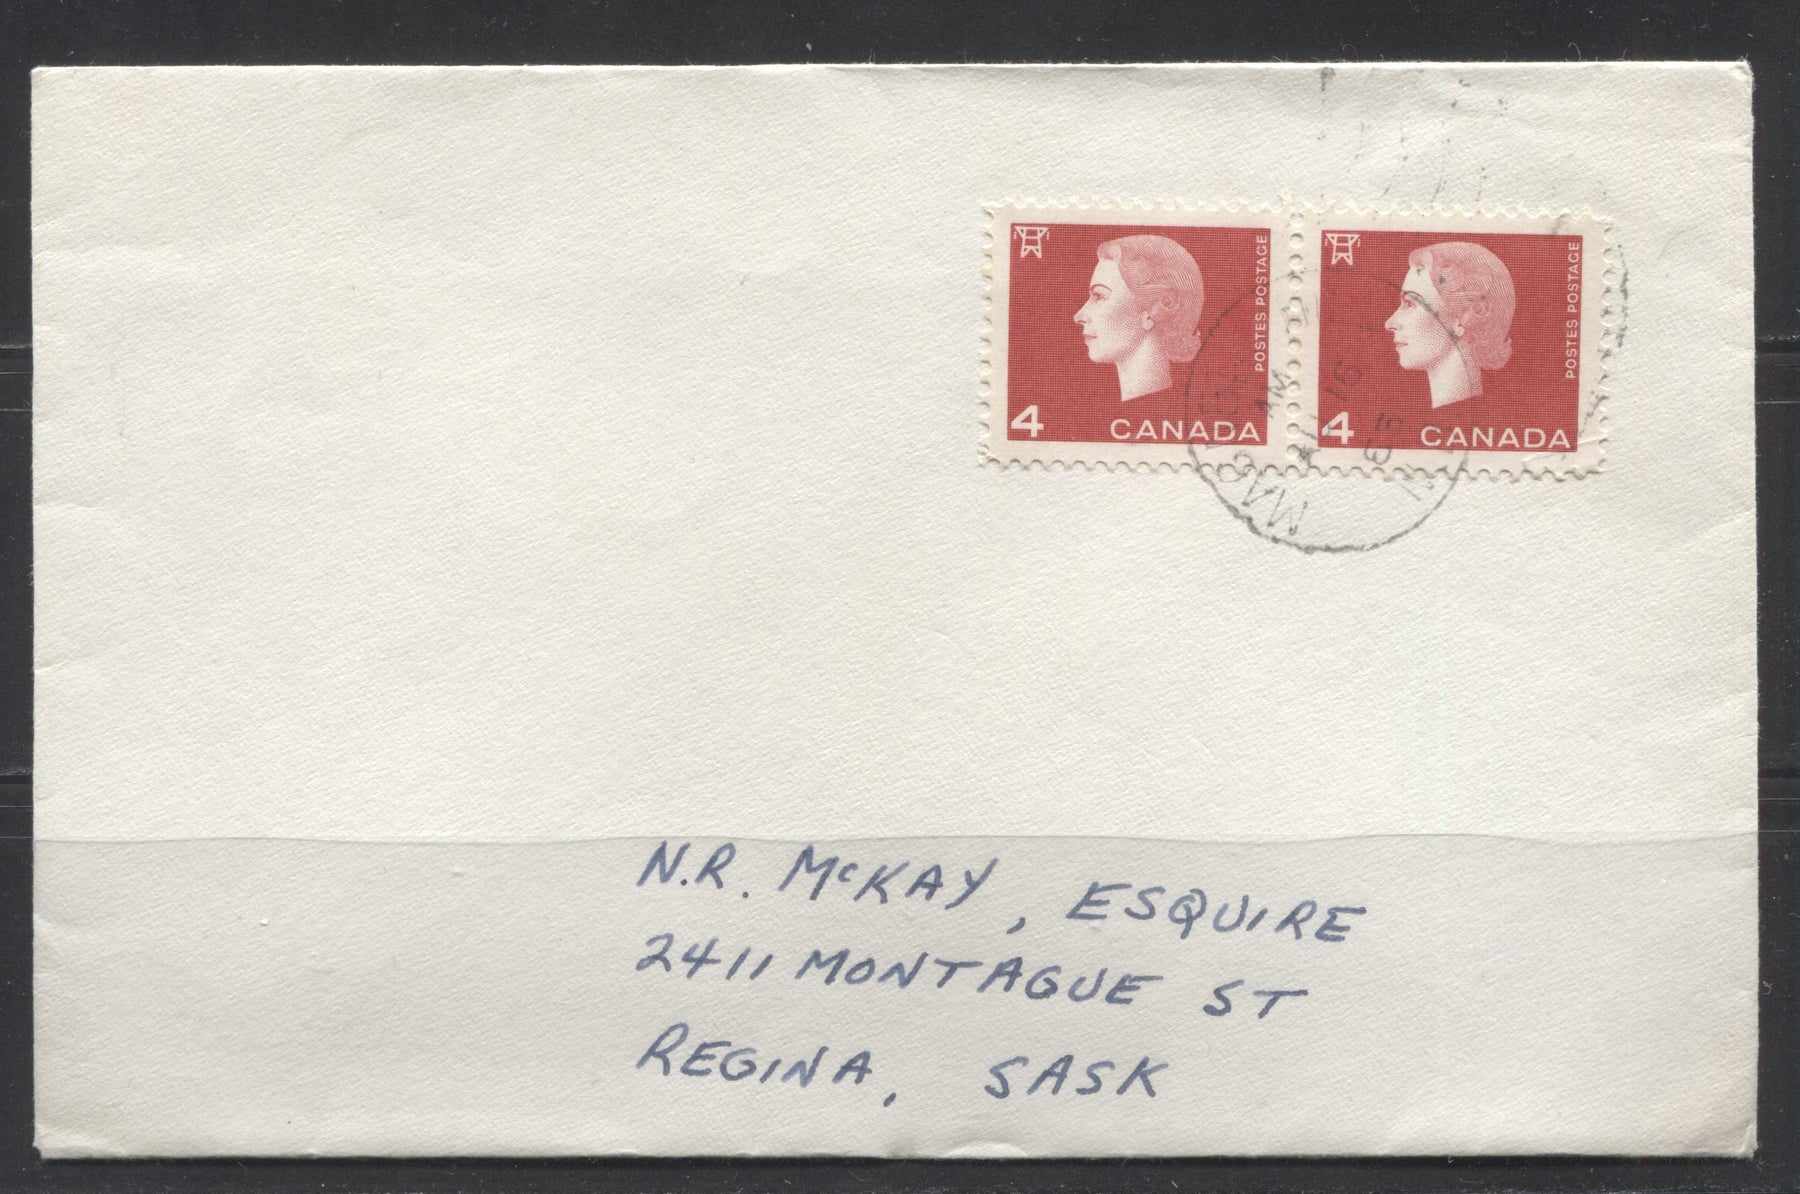 Canada #404 4c Bright Red 1962-1967 Cameo Issue, Pair Used on Double Weight Domestic Cover